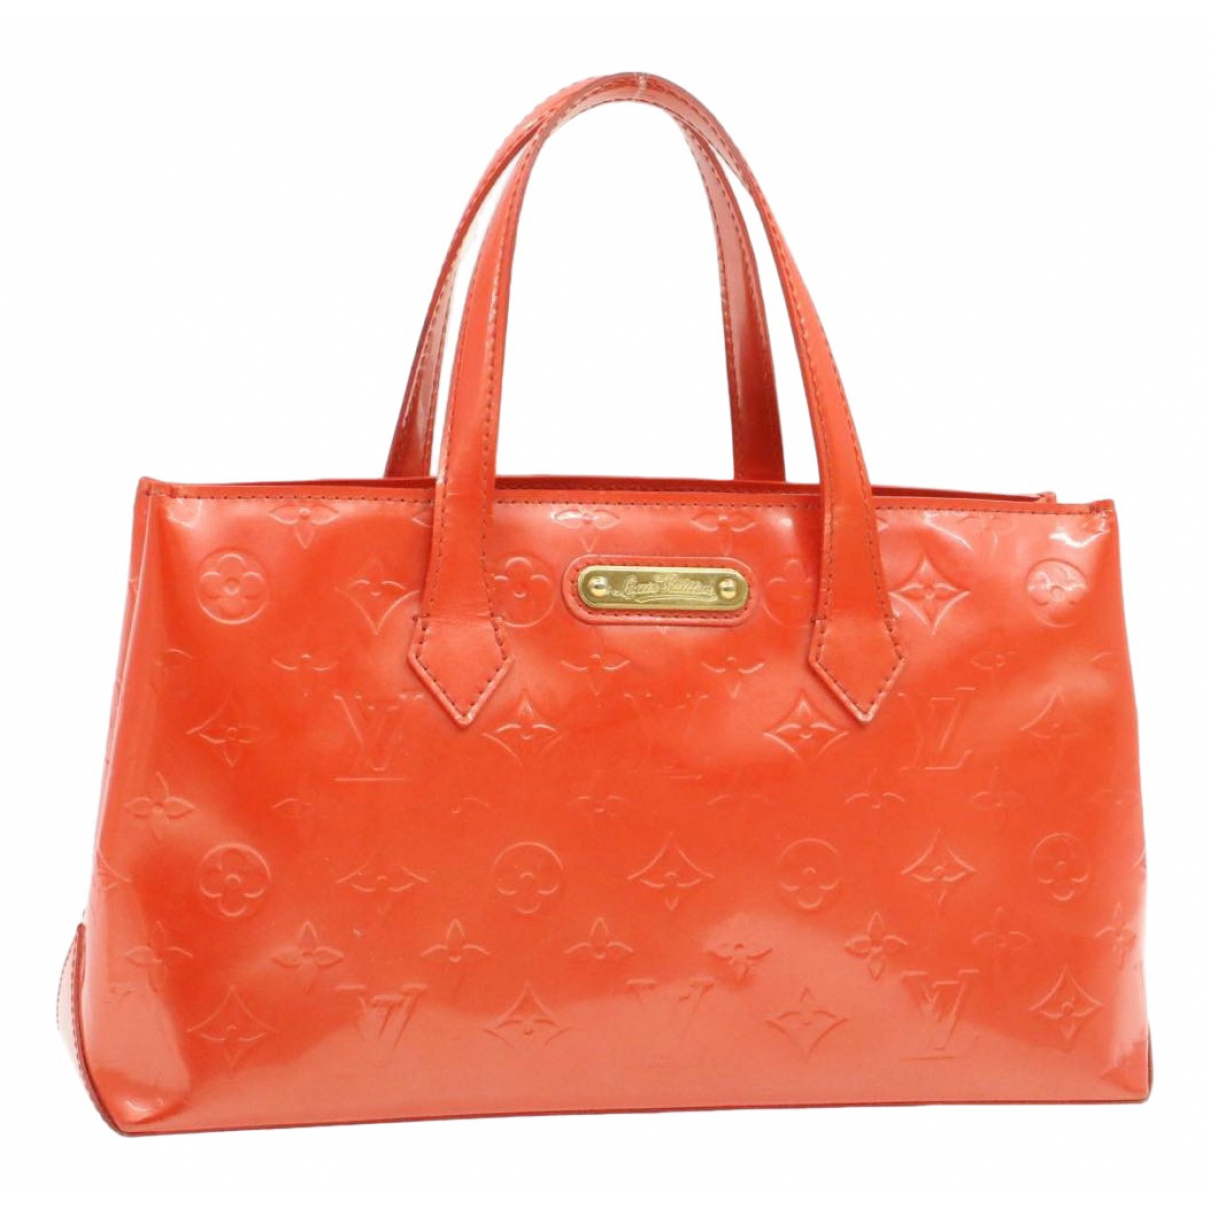 Louis Vuitton Wilshire Orange Patent leather handbag for Women N